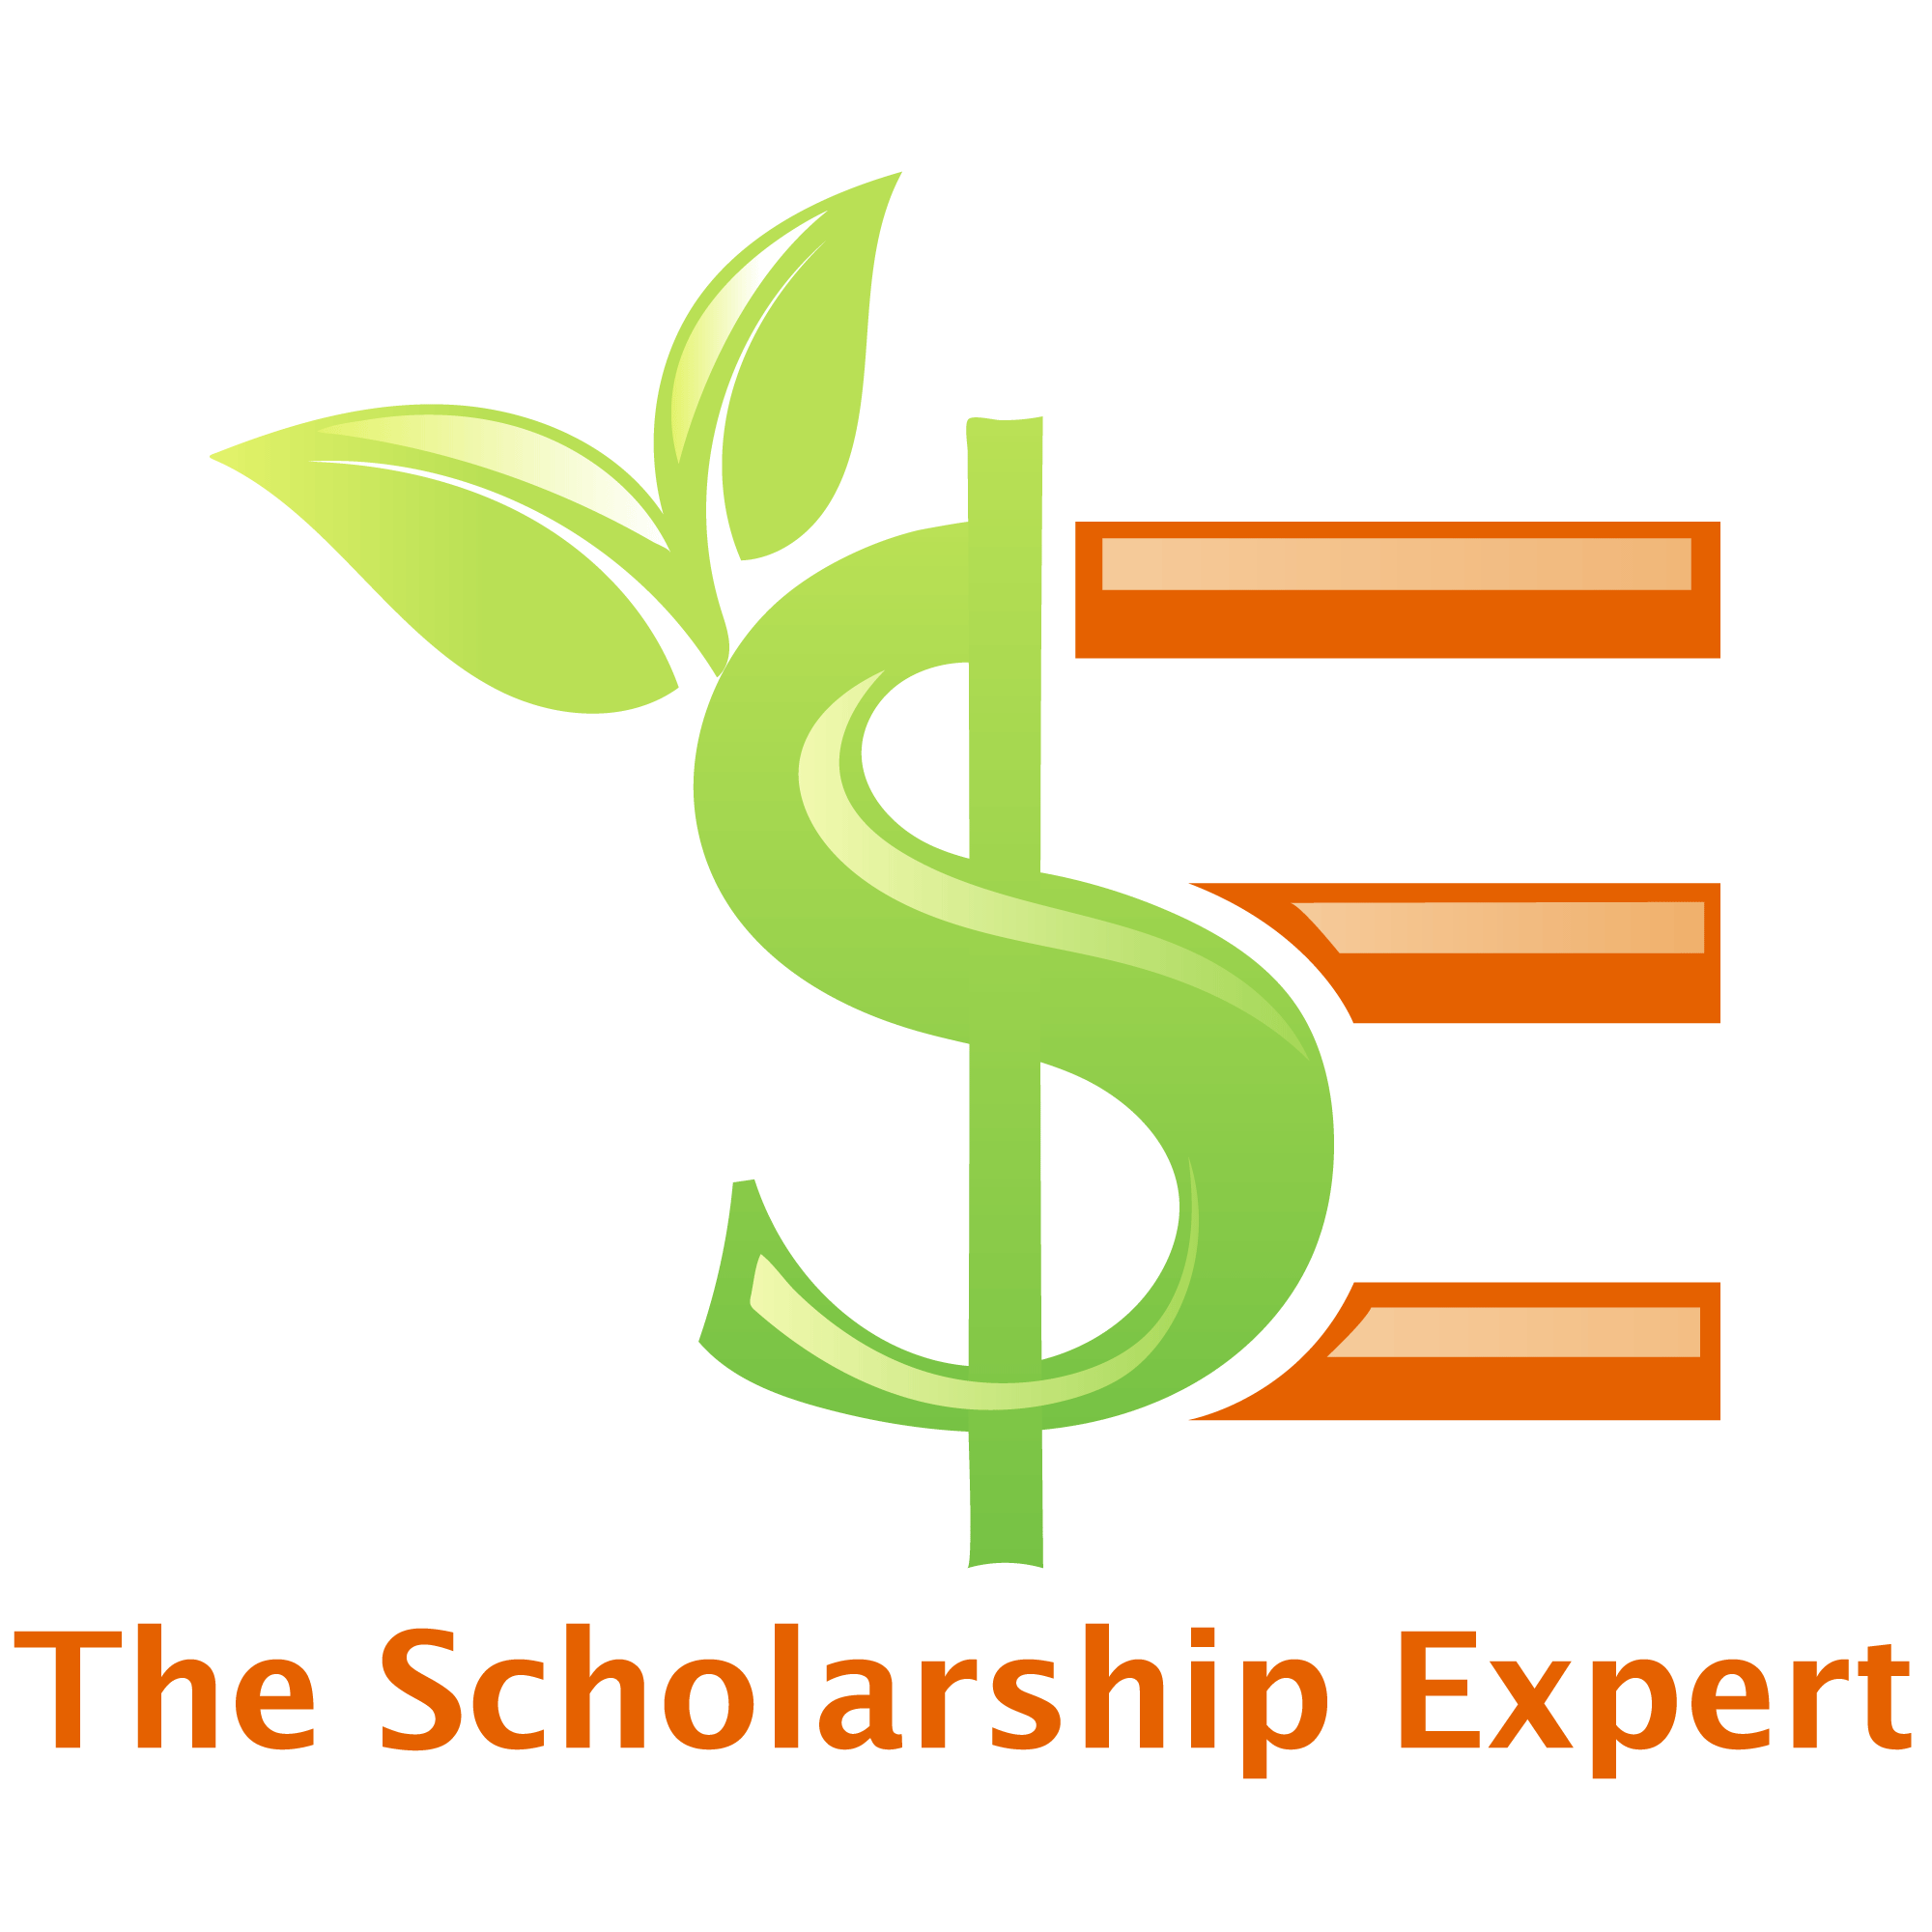 The Scholarship Expert